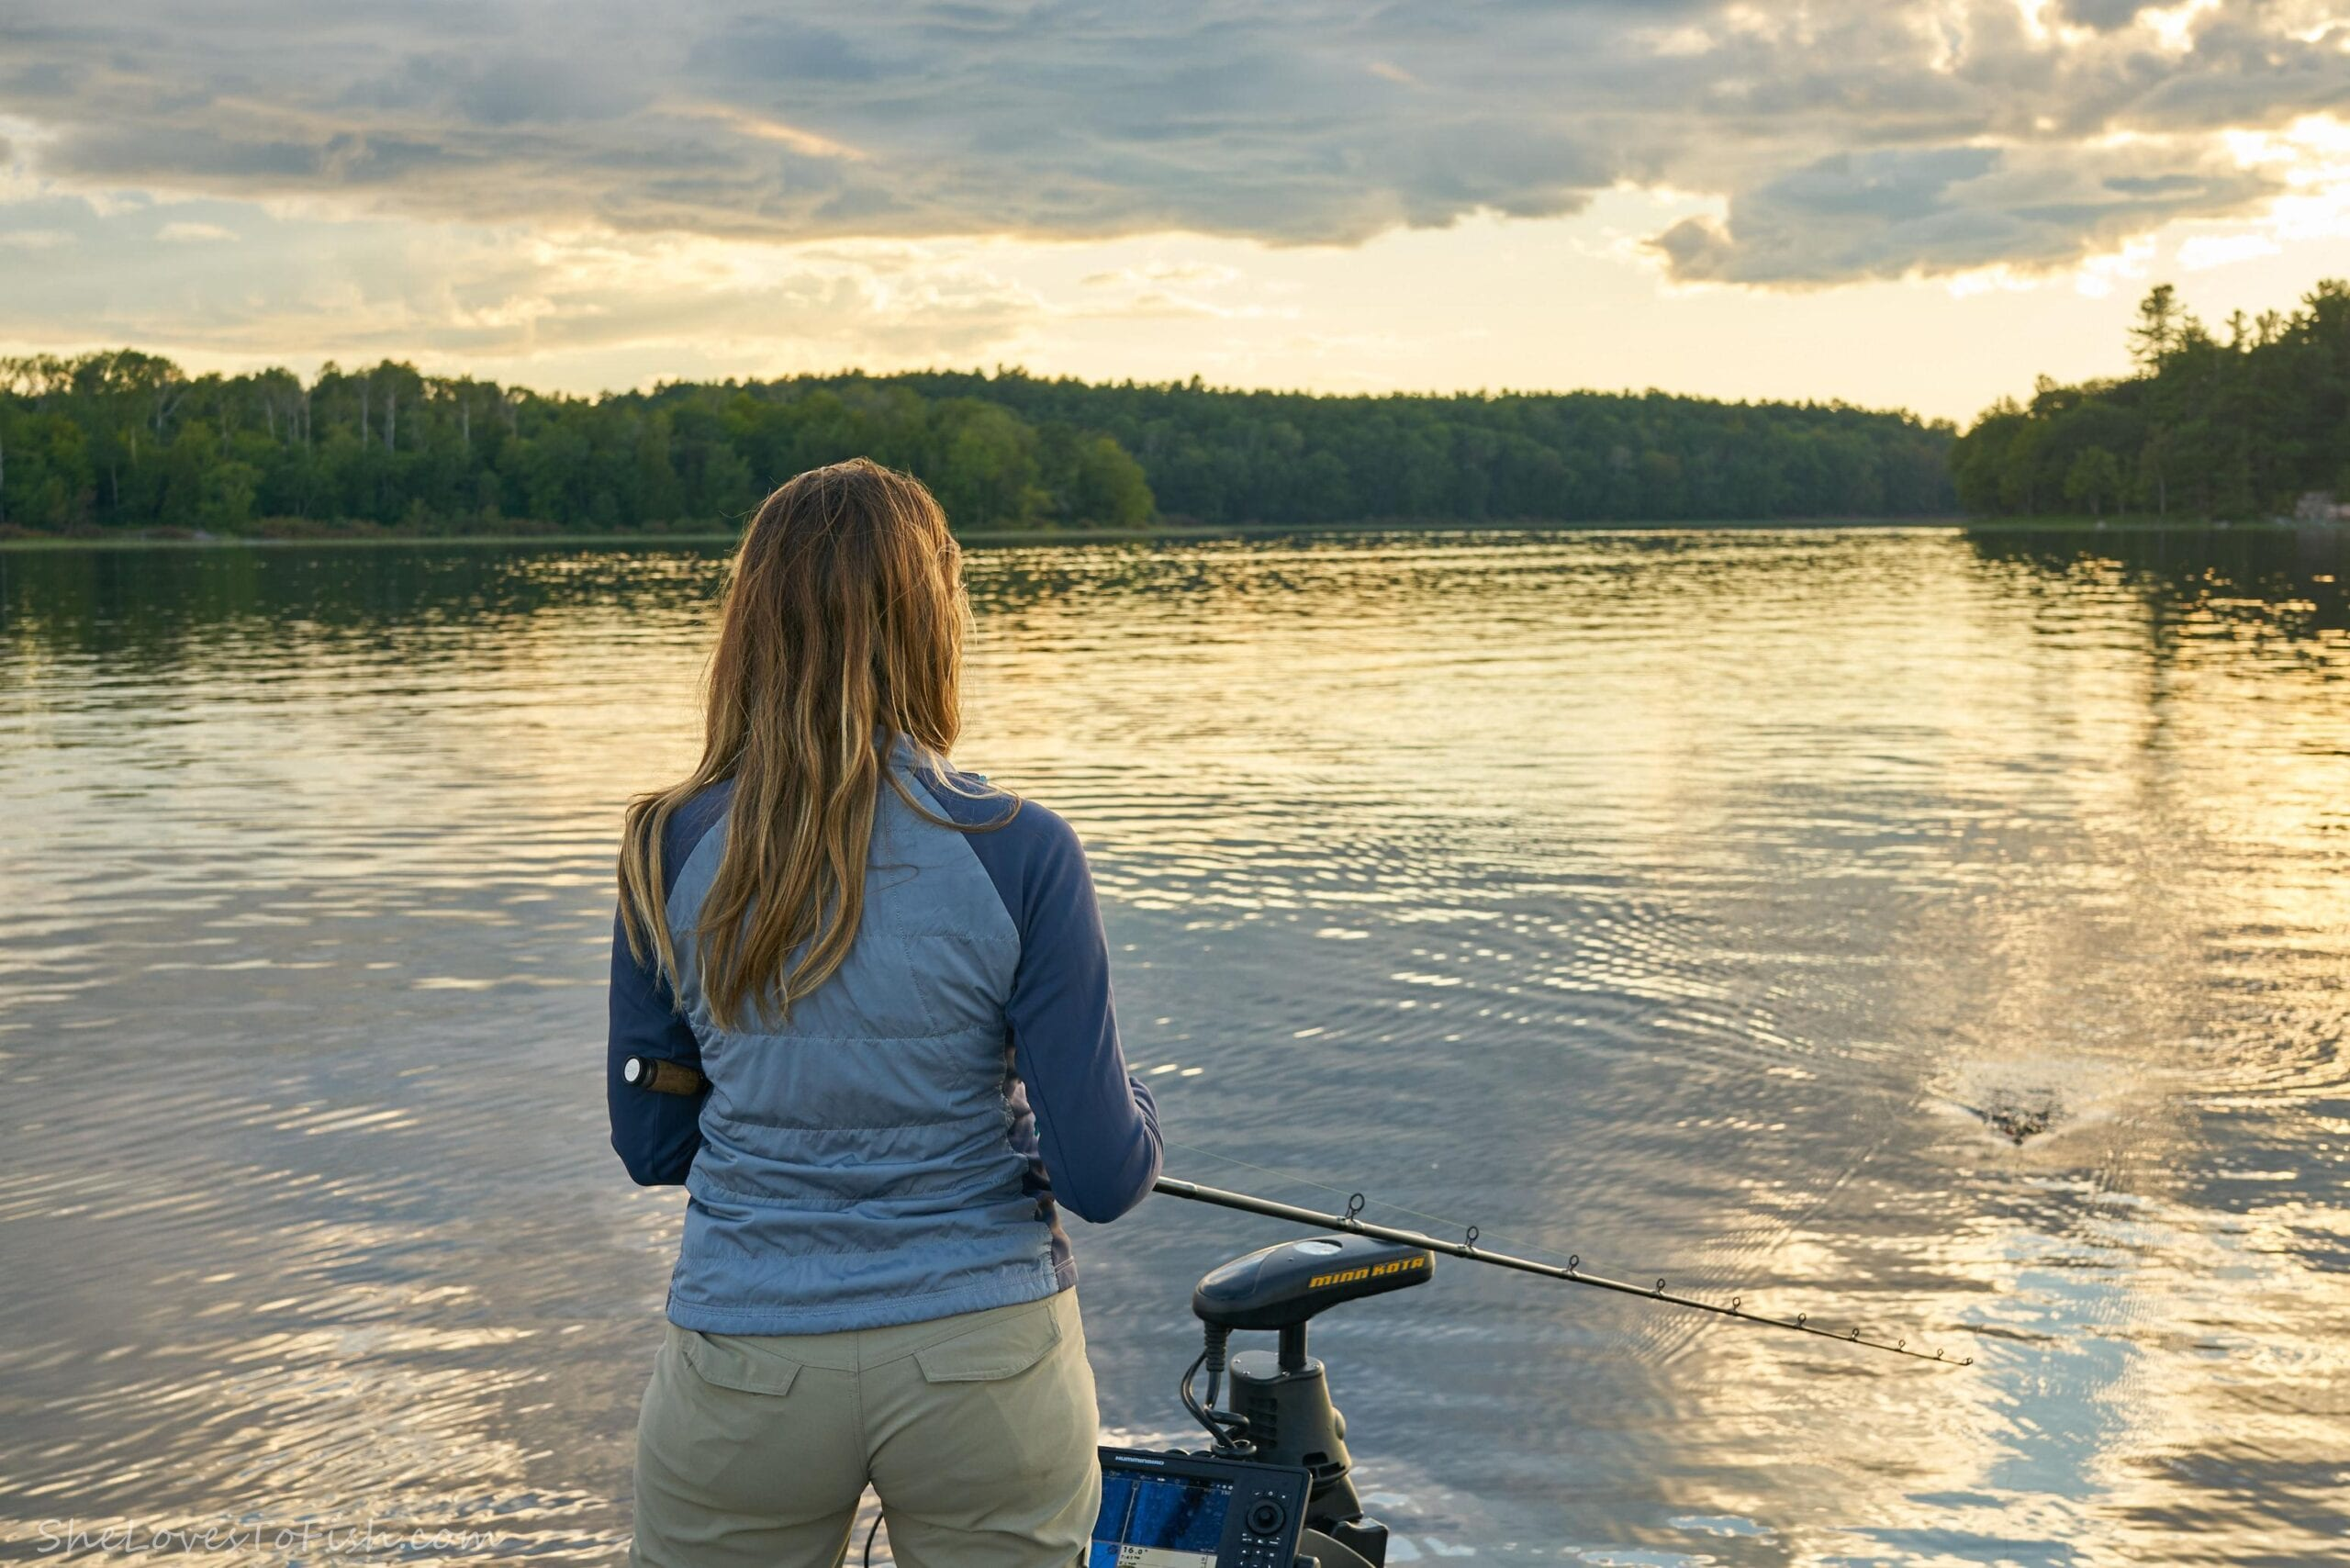 Ashley Rae, SheLovesToFish, French River Landscape, Northern Ontario Provincial Park, Fishing Canada